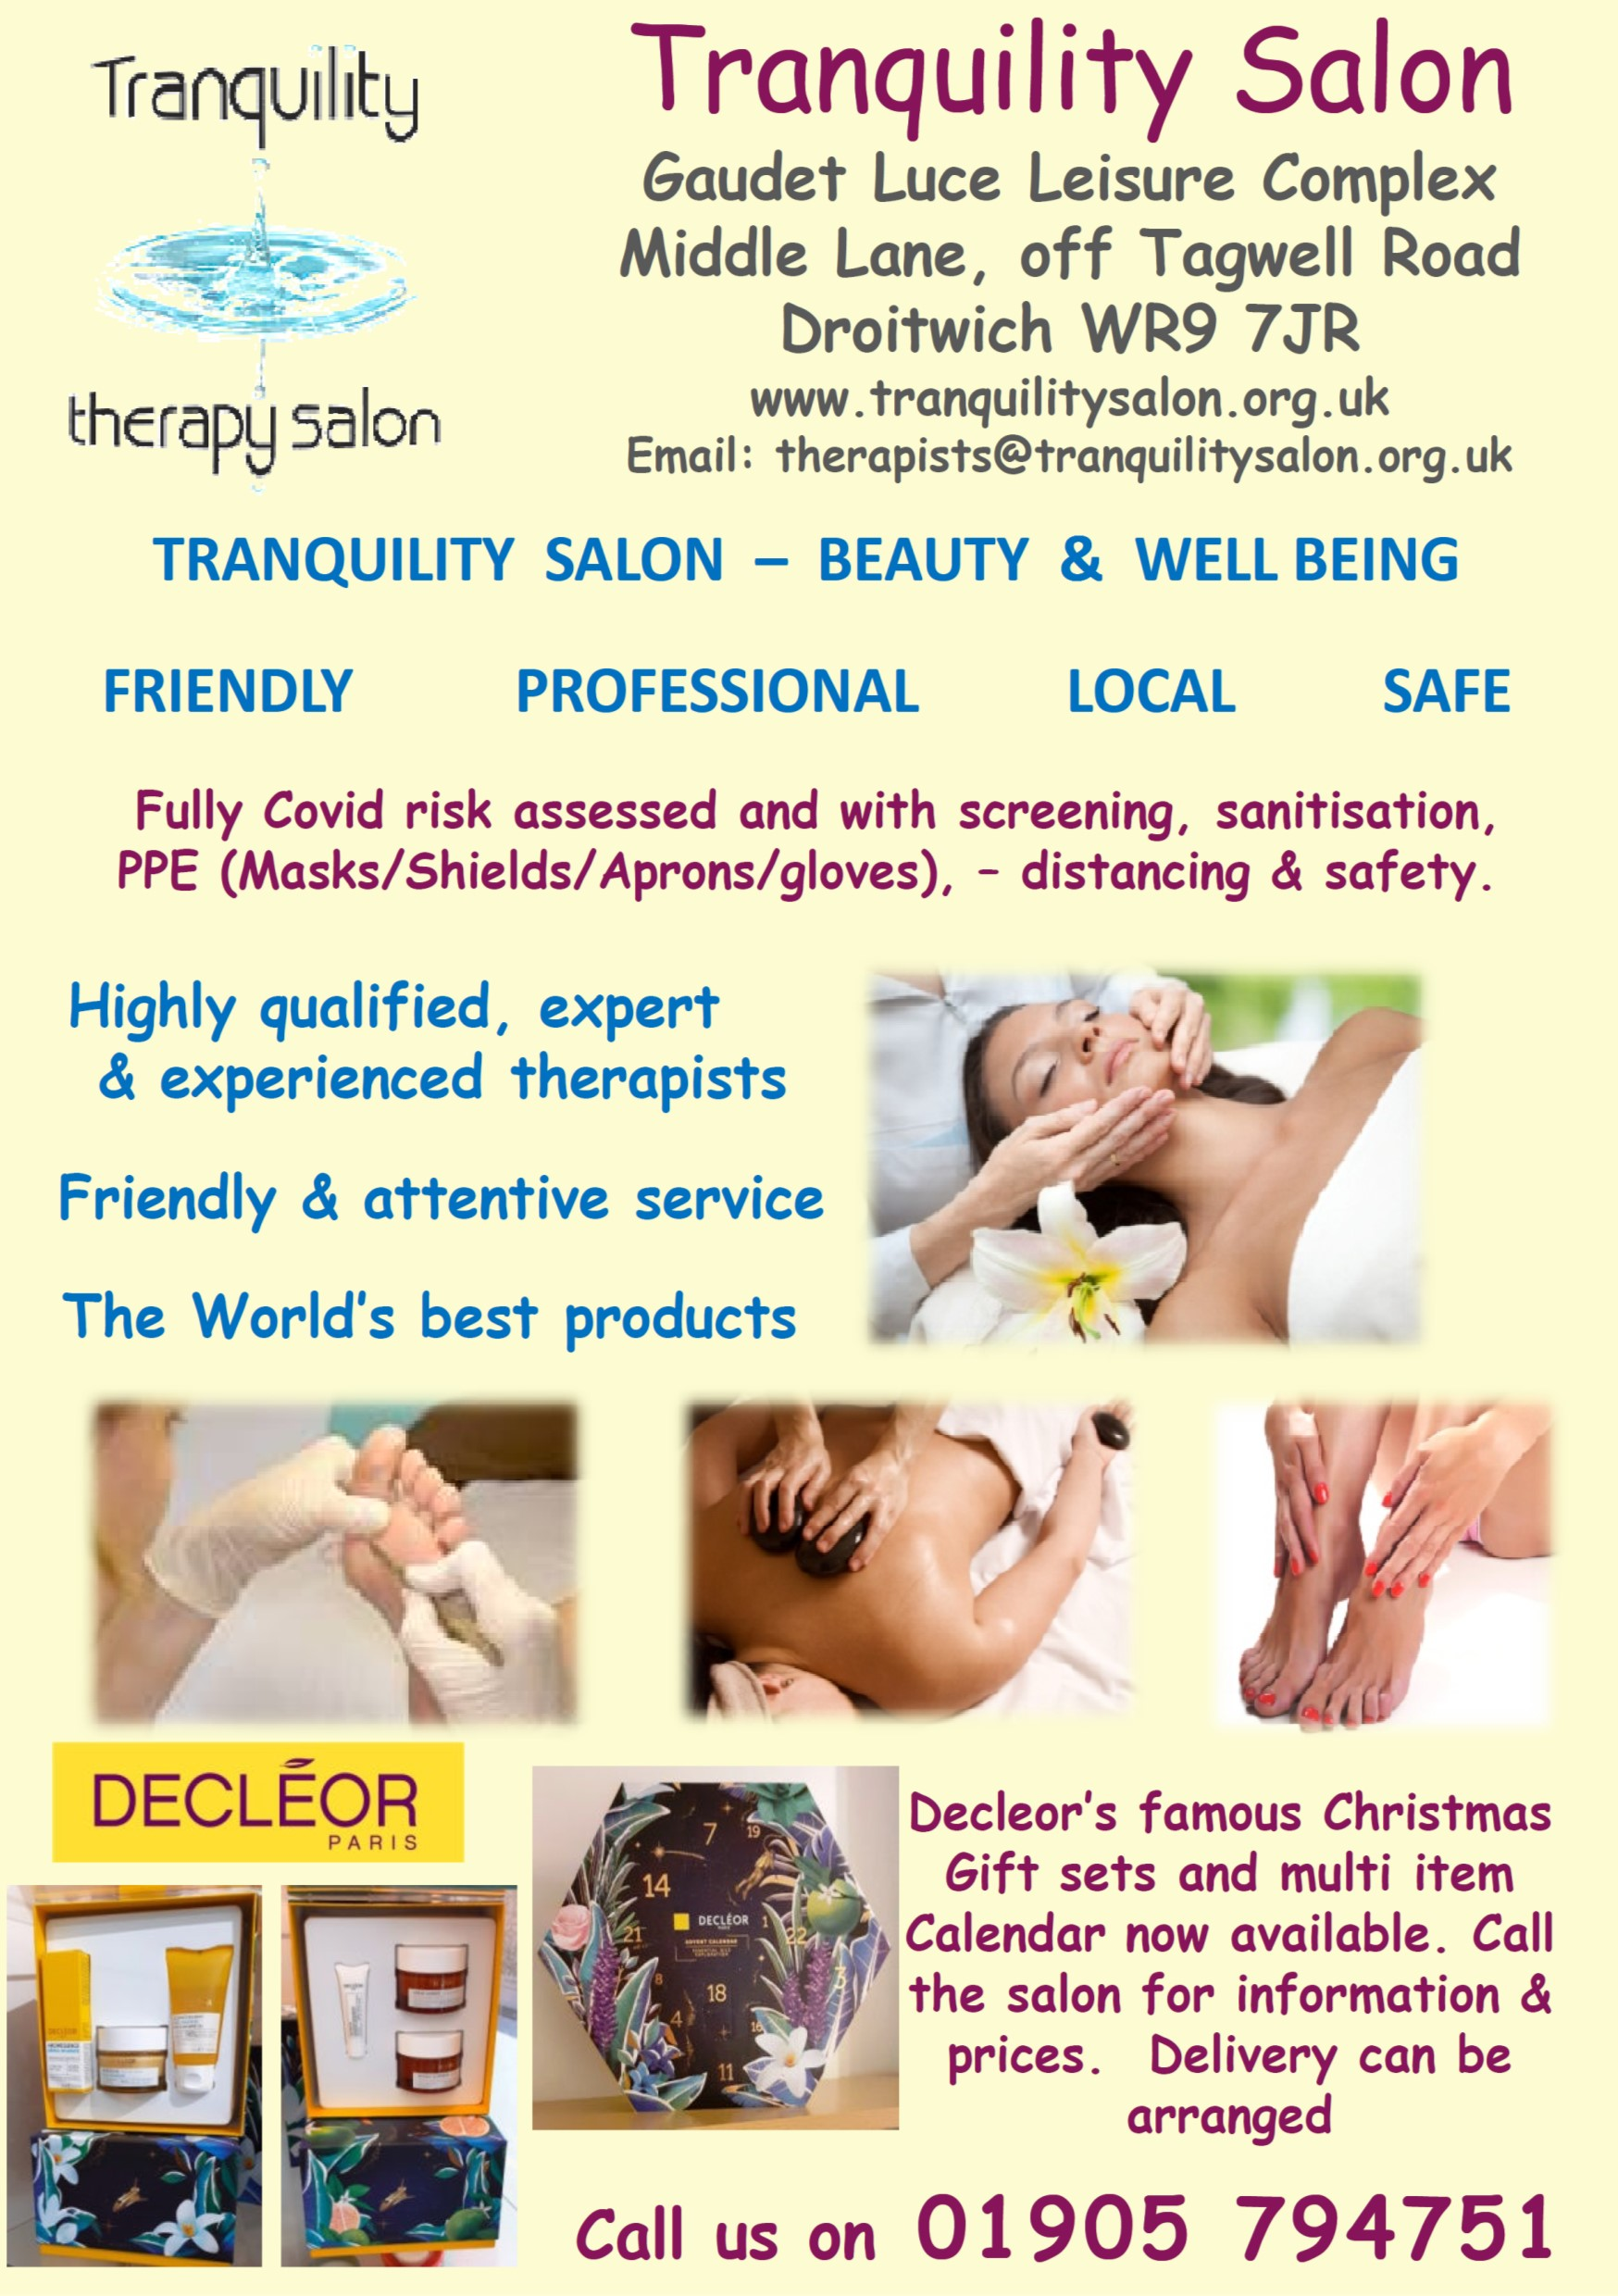 Tranquility Beauty Salon Droitwich